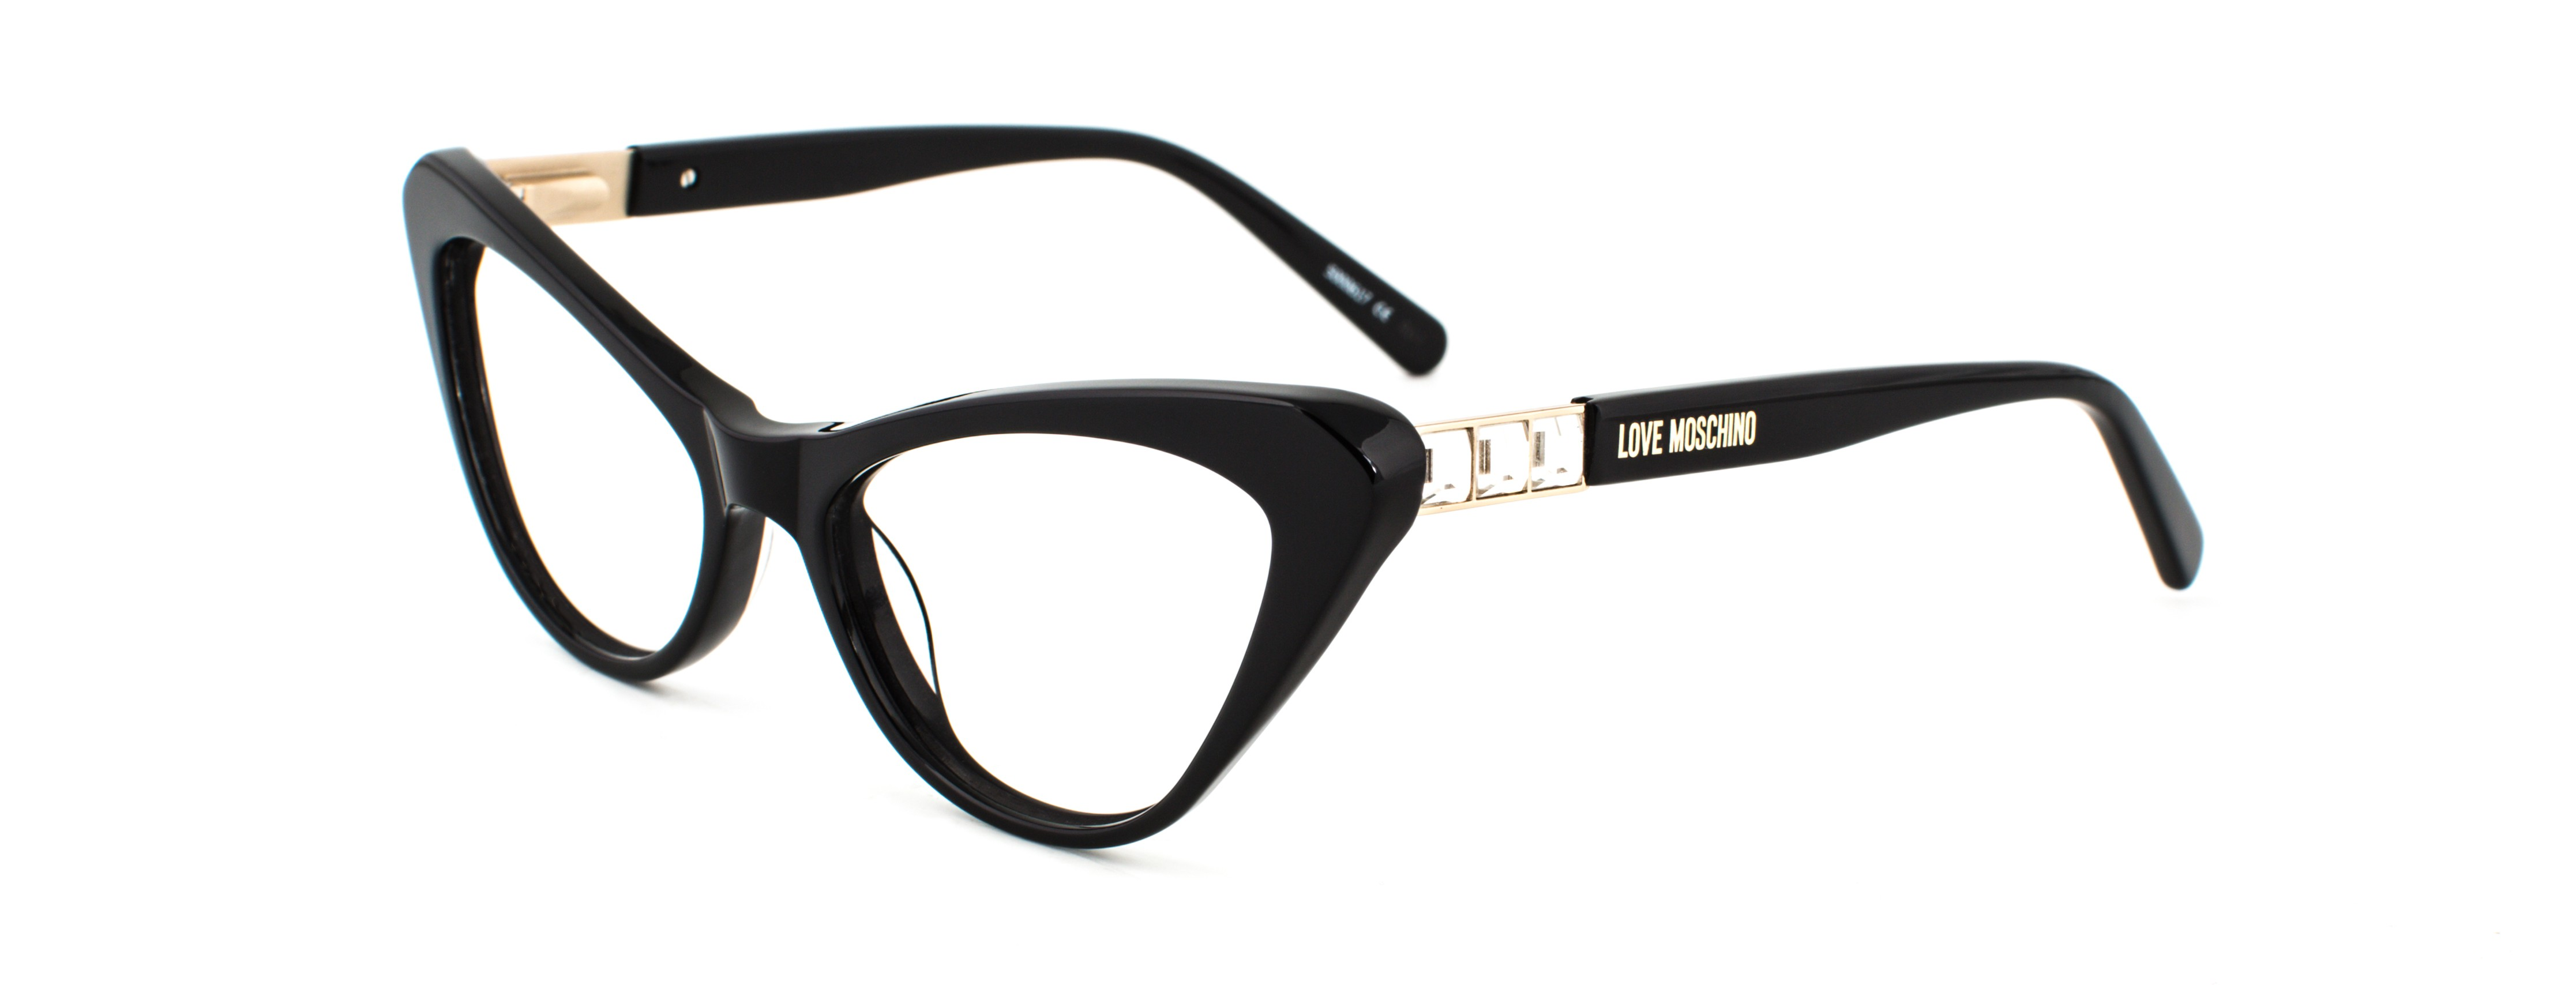 Specsavers Glasses Frames : Fall for Specsavers new addition: Love Moschino So Many ...